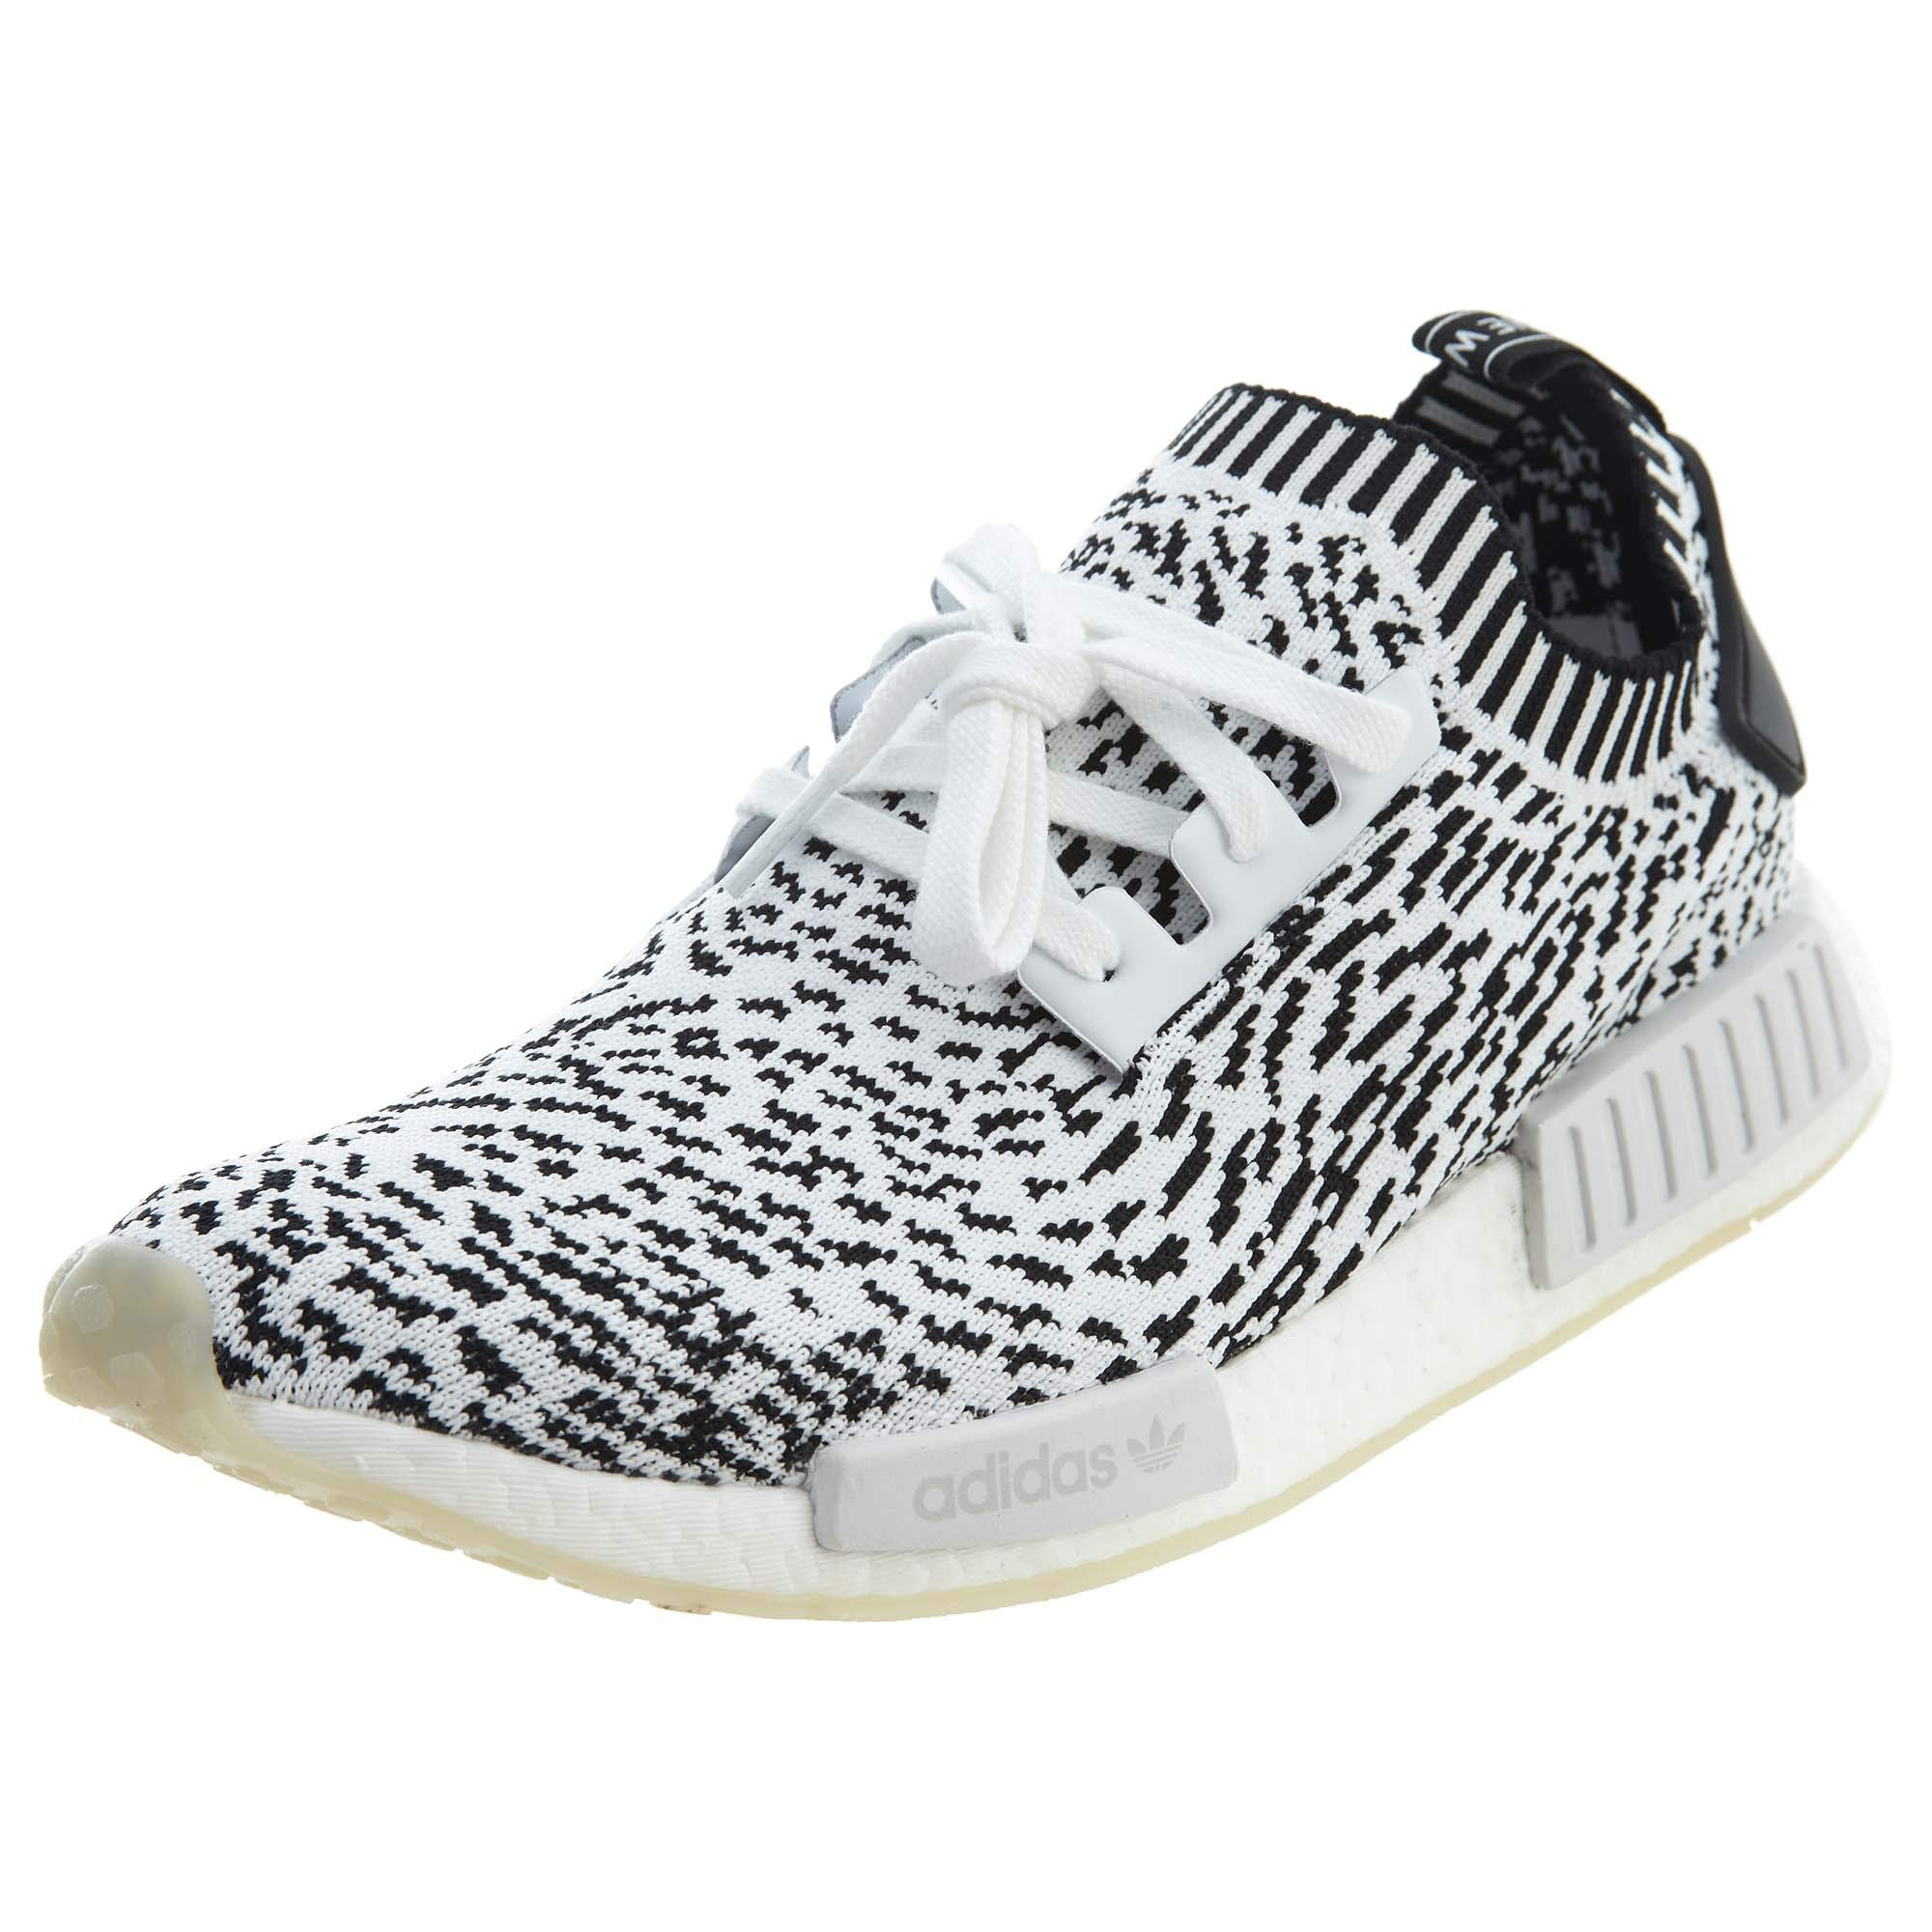 5dffe6e99 Adidas Nmd R1 White Core Black Top Deals   Lowest Price ...